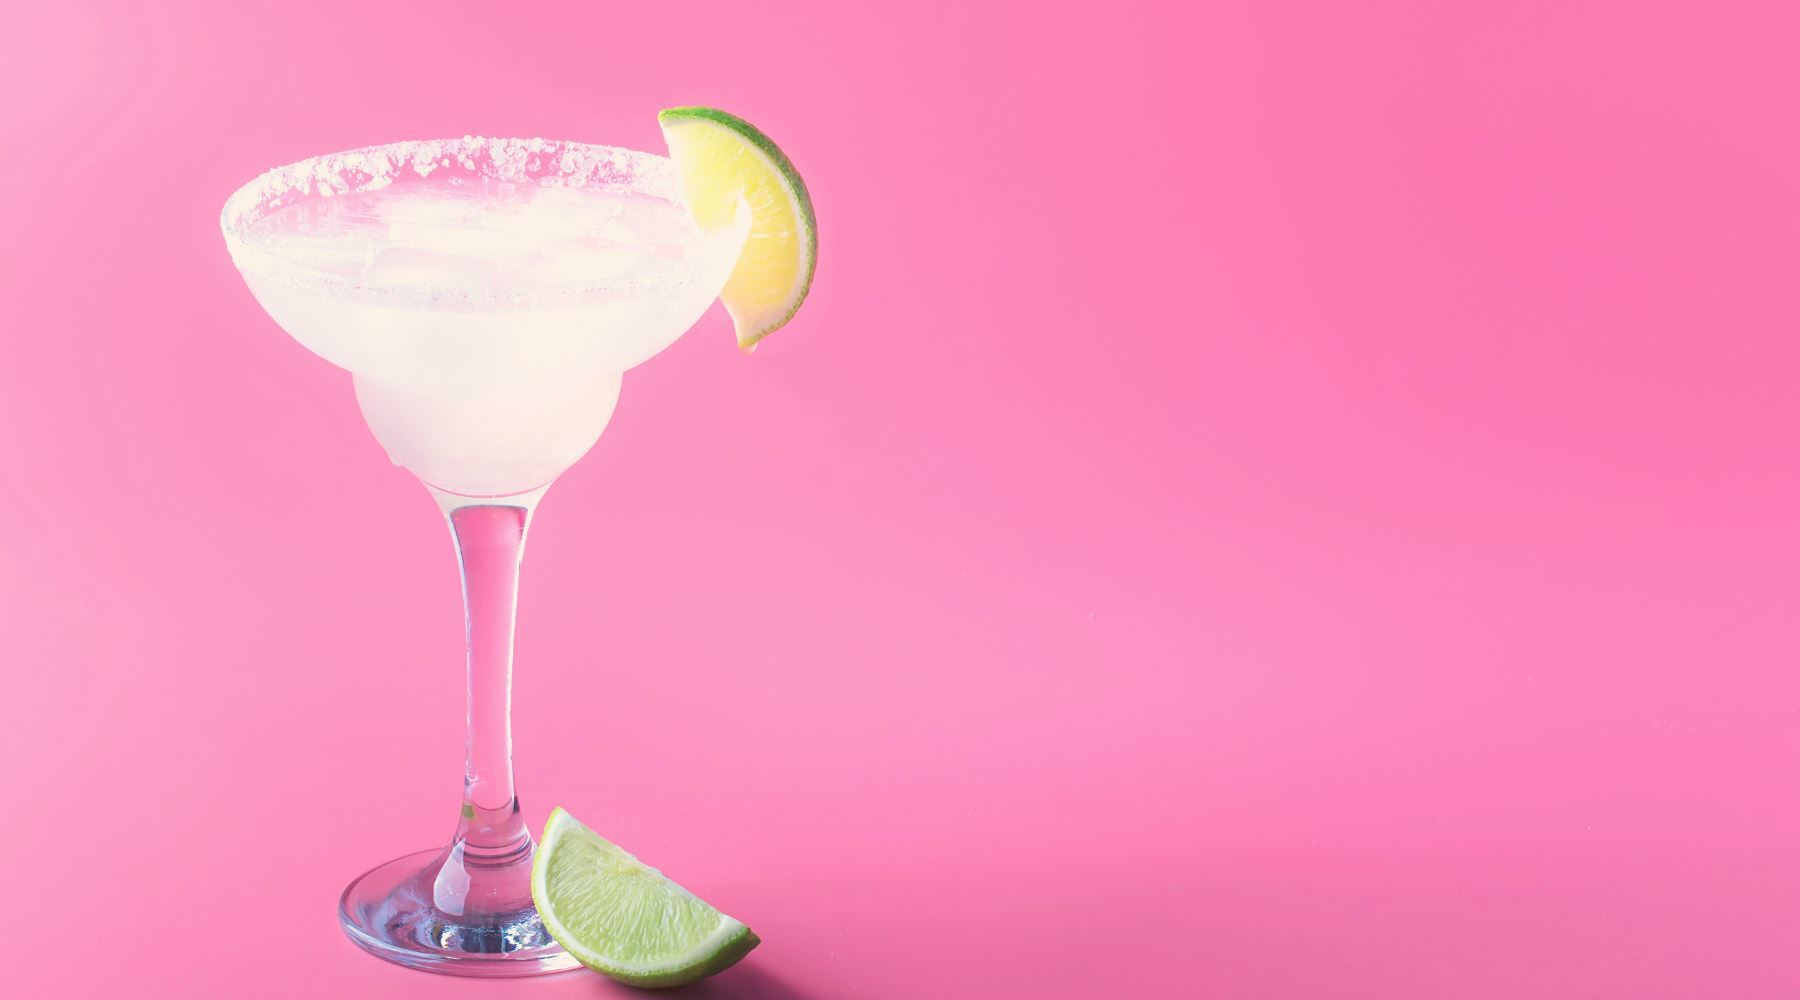 How-to make the ultimate margarita